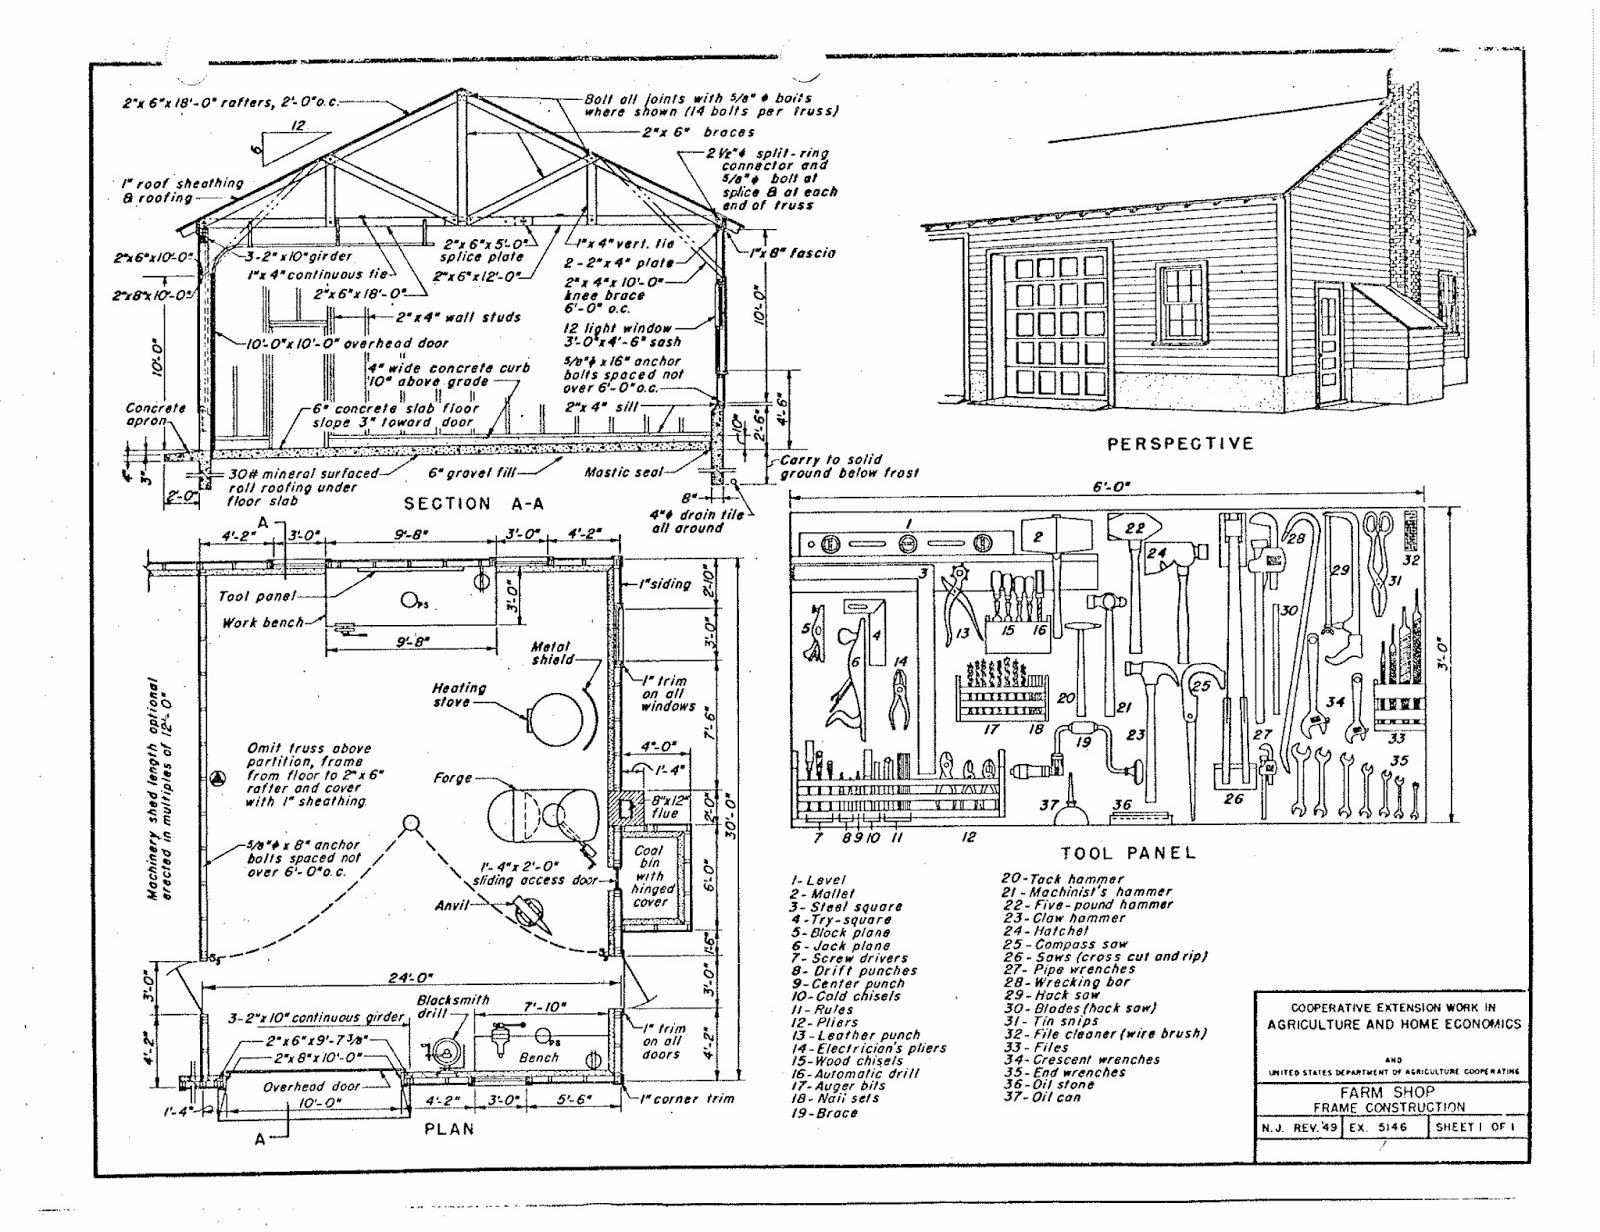 Lionel Whistle Tender Schematics Wrg 1299] Lionel Whistle Wiring Diagram for Shed Of Lionel Whistle Tender Schematics